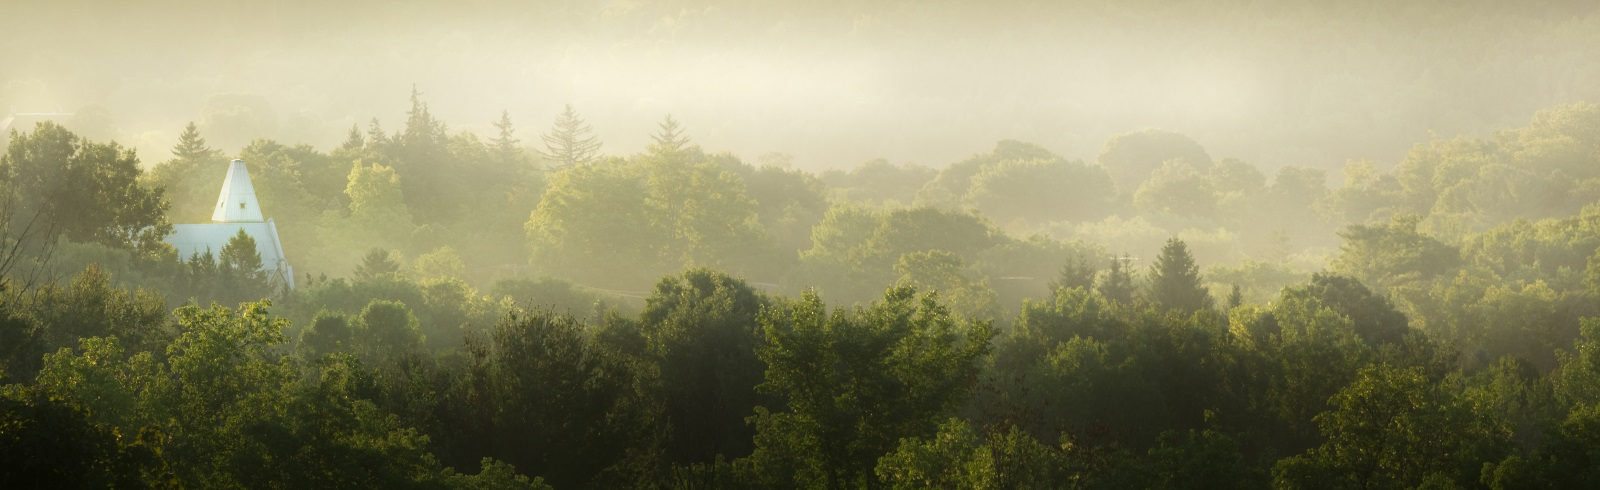 a landscape of trees with mist above them